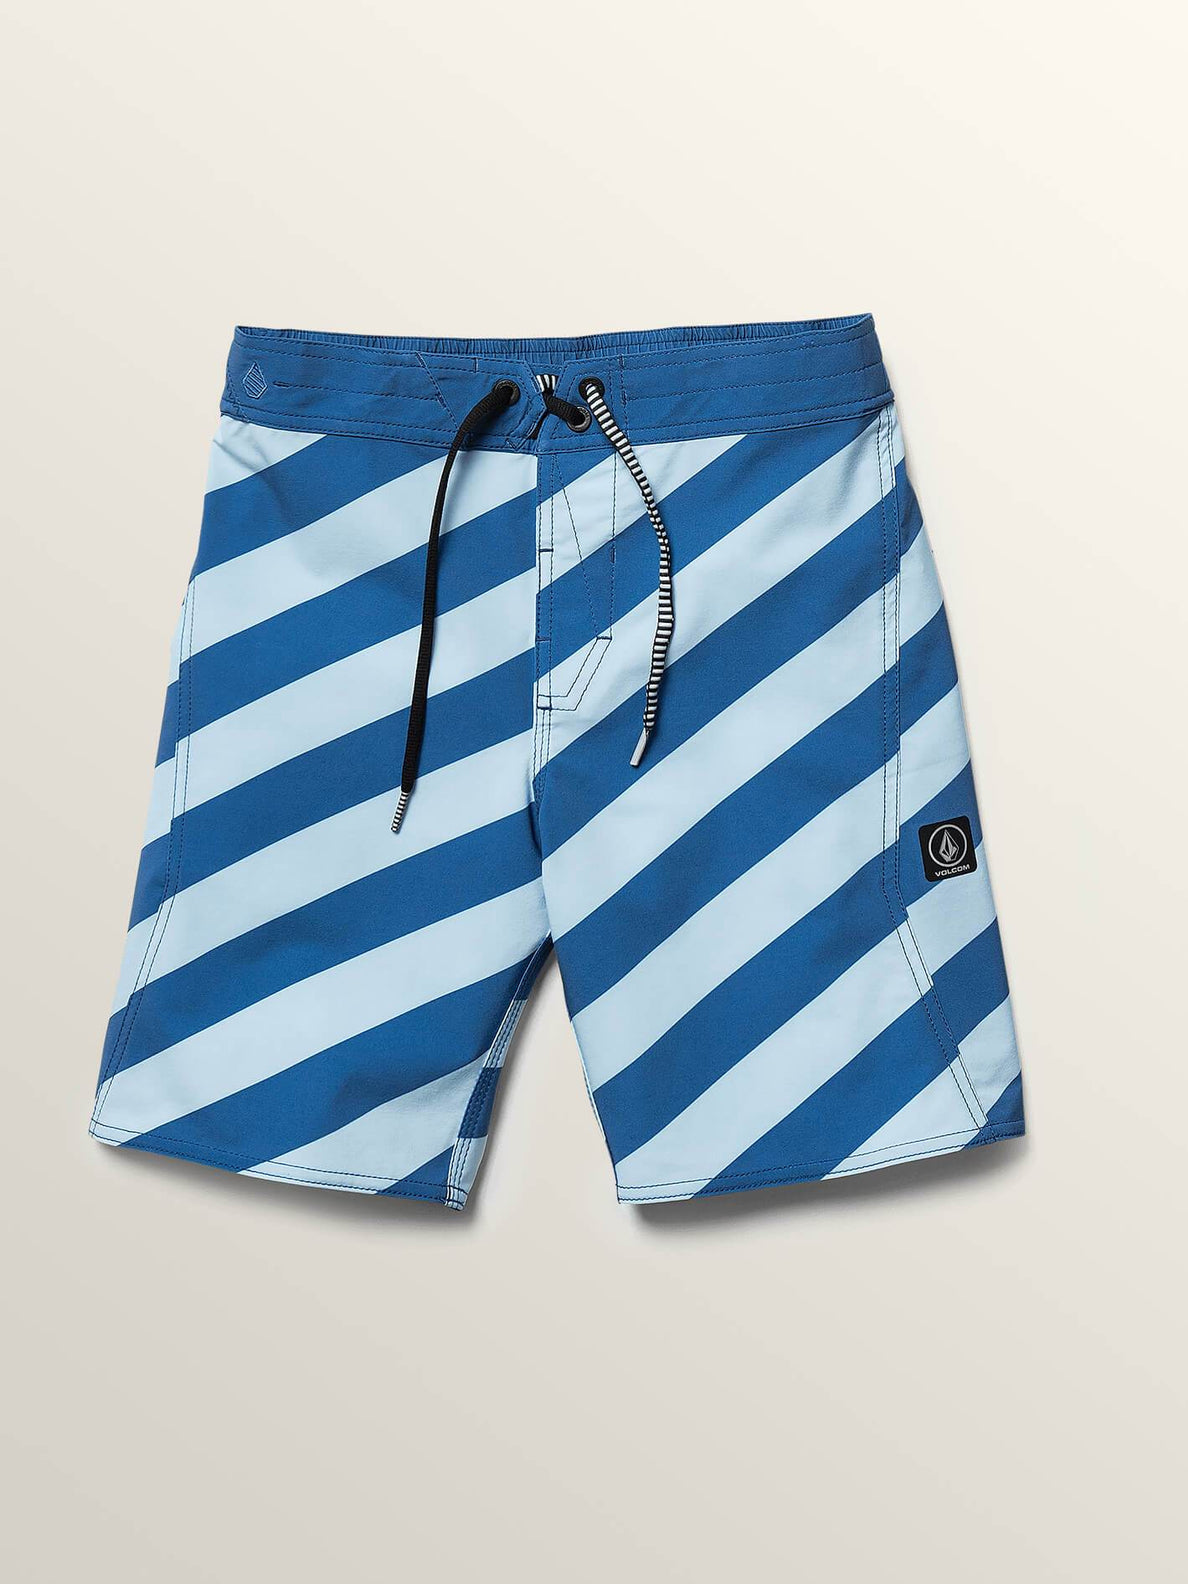 Big Boys Stripey Elastic Boardshorts In Arctic Blue, Front View